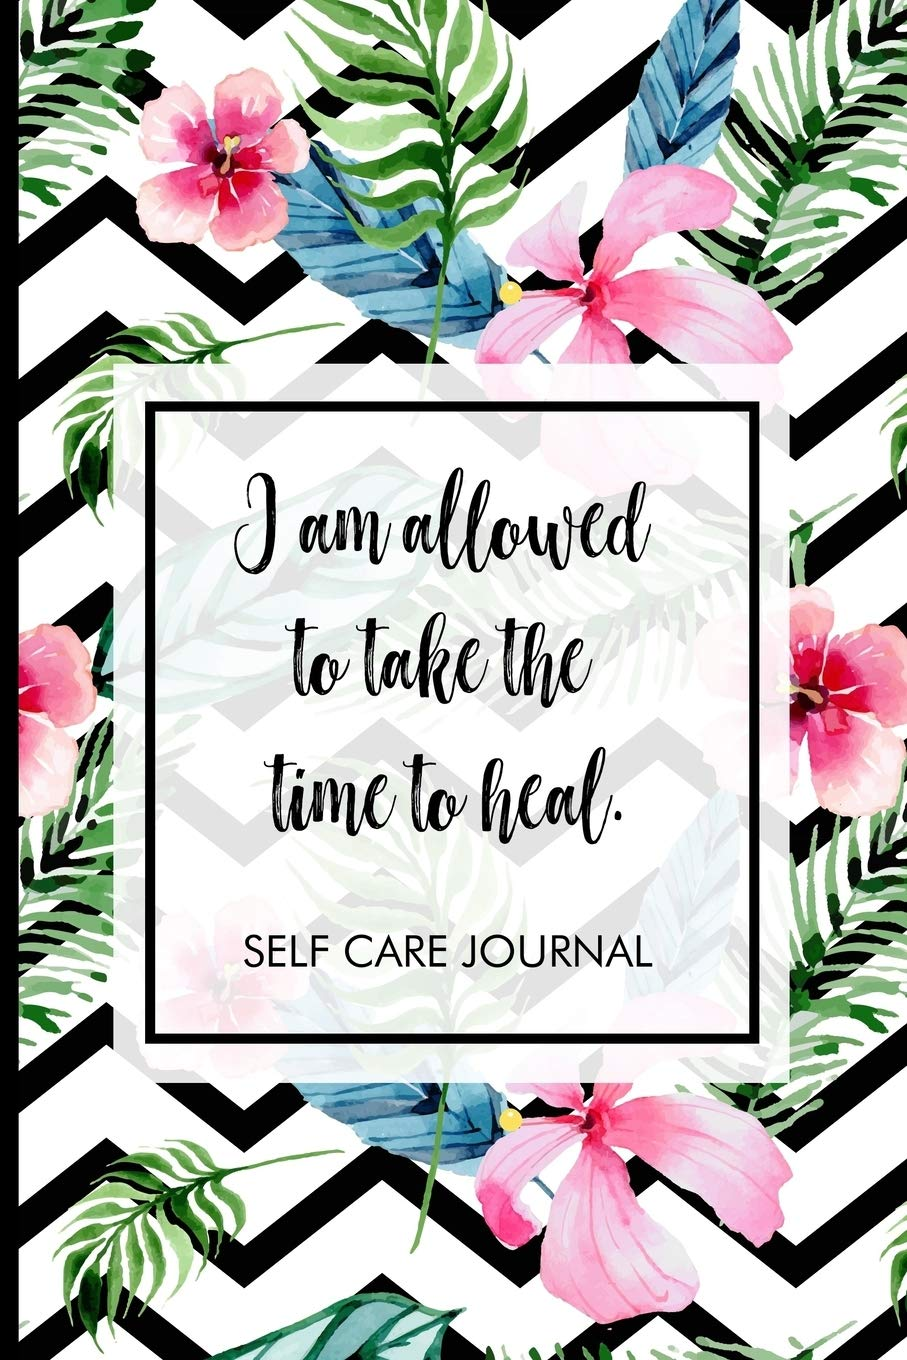 I am allowed to take the time to heal.: Self.